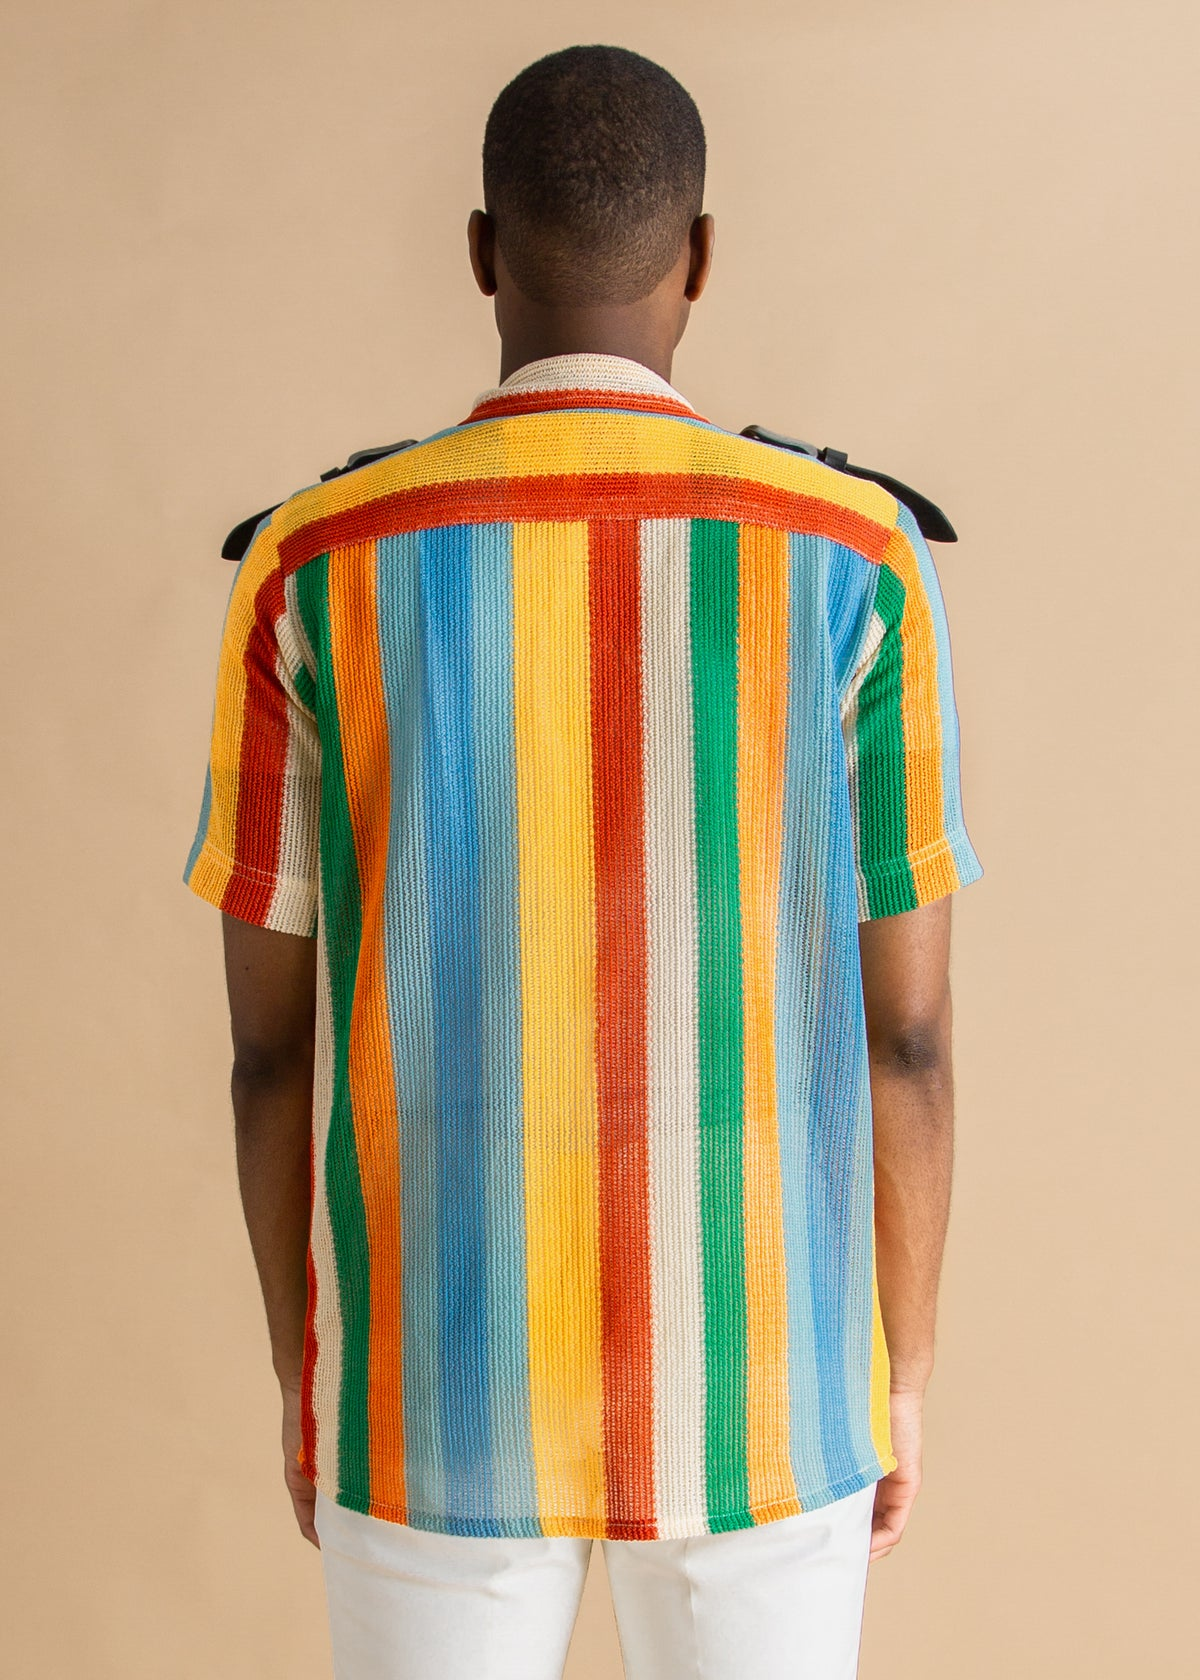 Tokyo James multicolored striped knit buckled top